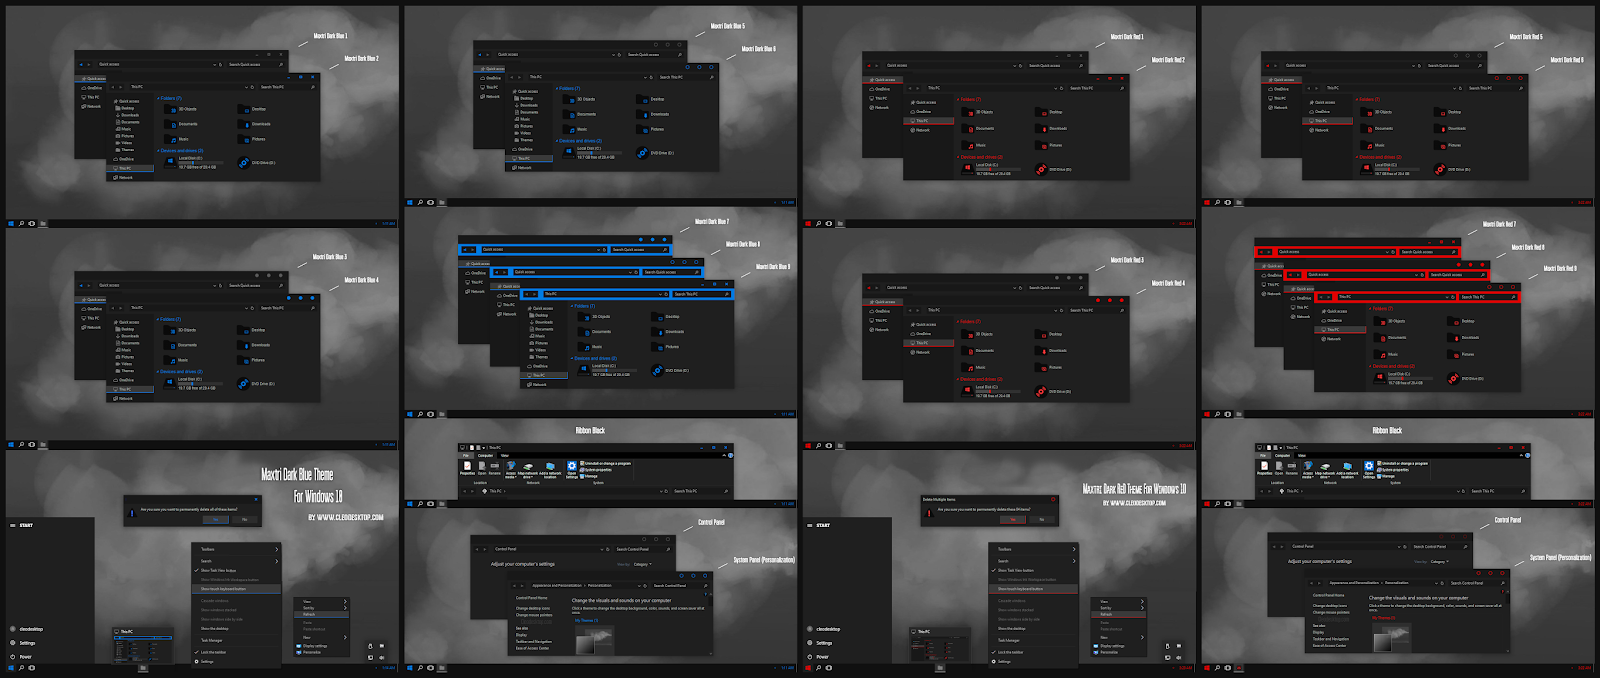 Maxtri Dark Blue And Red Theme For Windows10 2004